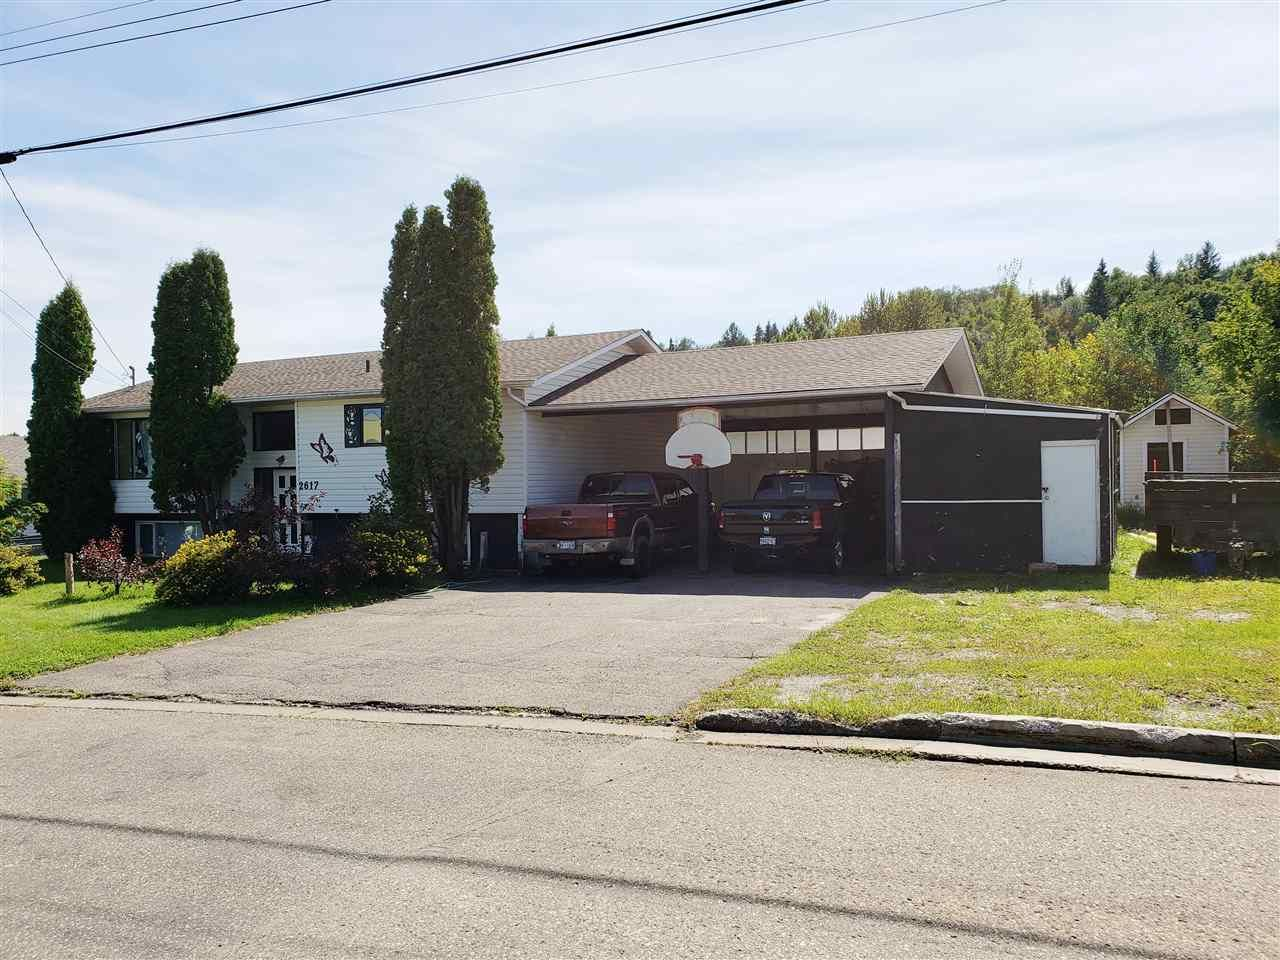 Main Photo: 2617 PETERSEN Road in Prince George: Peden Hill House for sale (PG City West (Zone 71))  : MLS®# R2489559